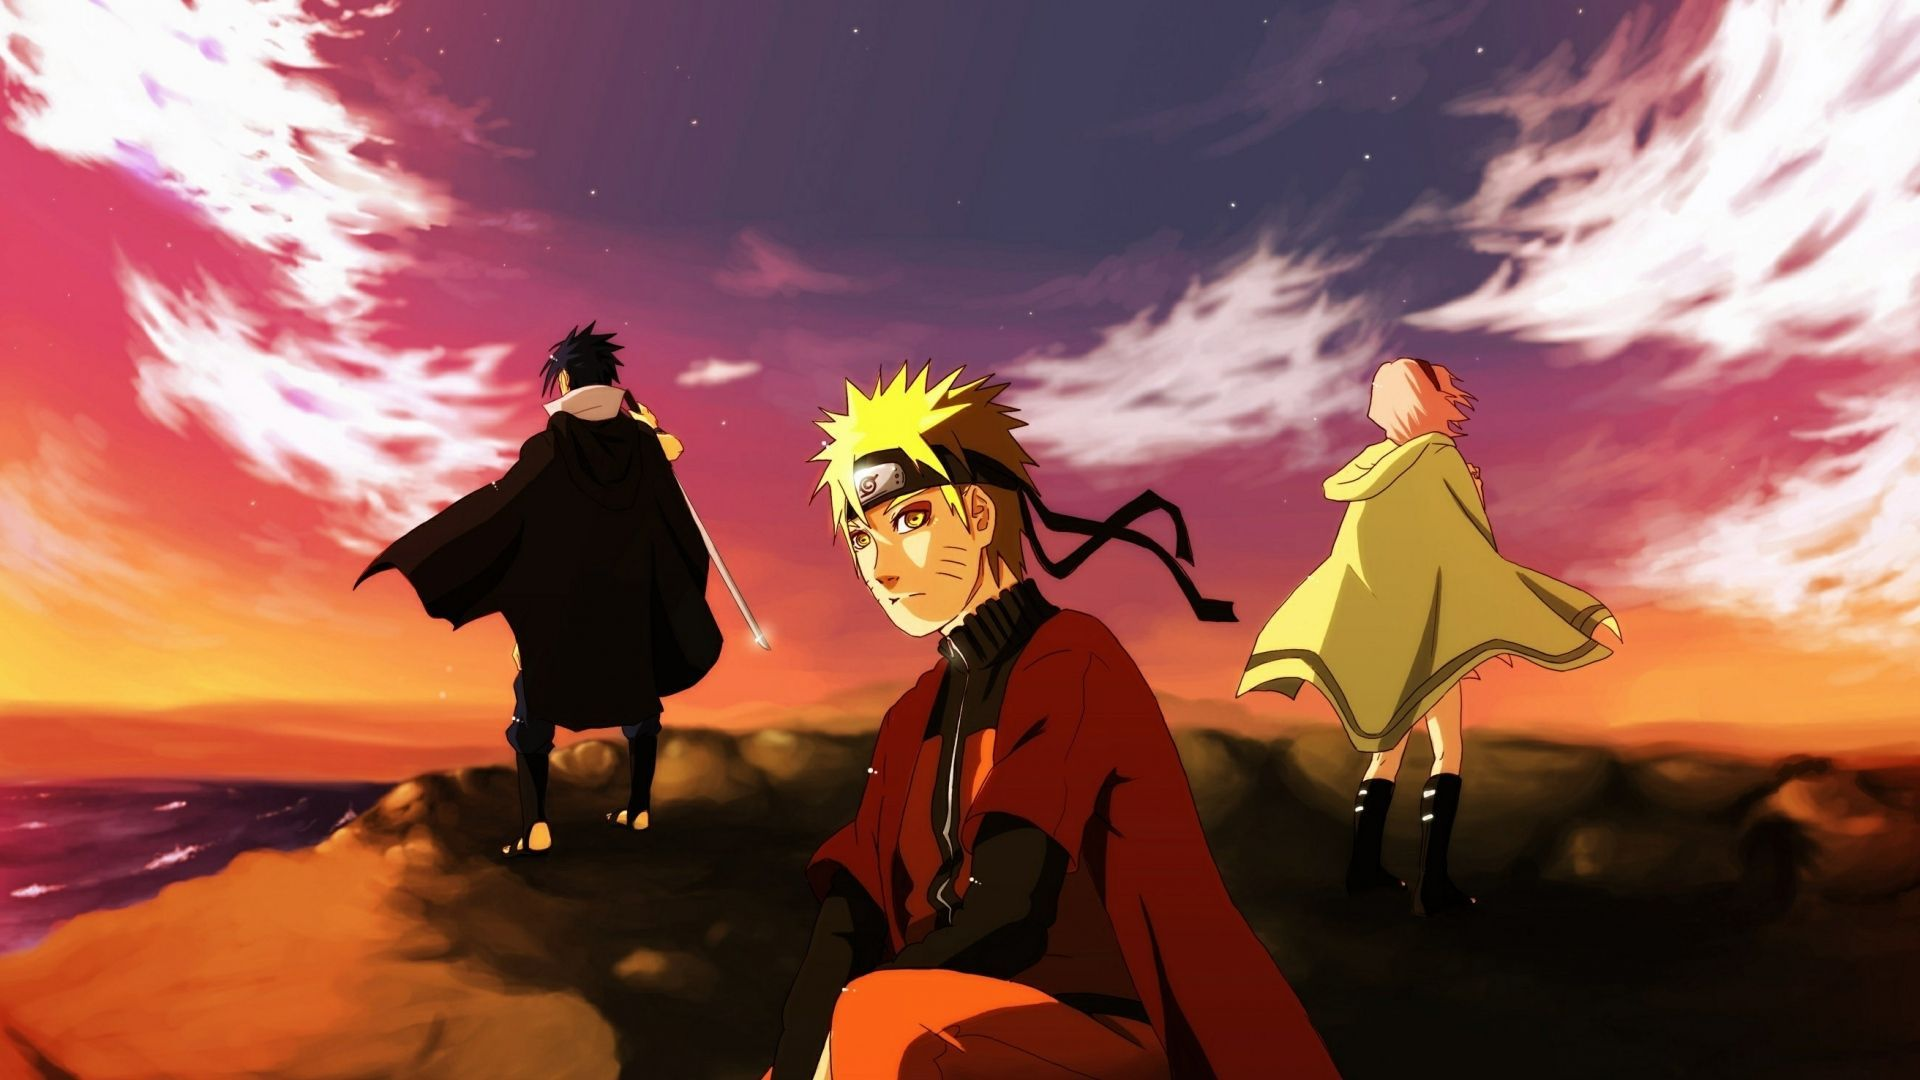 Aesthetic Naruto Wallpapers Top Free Aesthetic Naruto